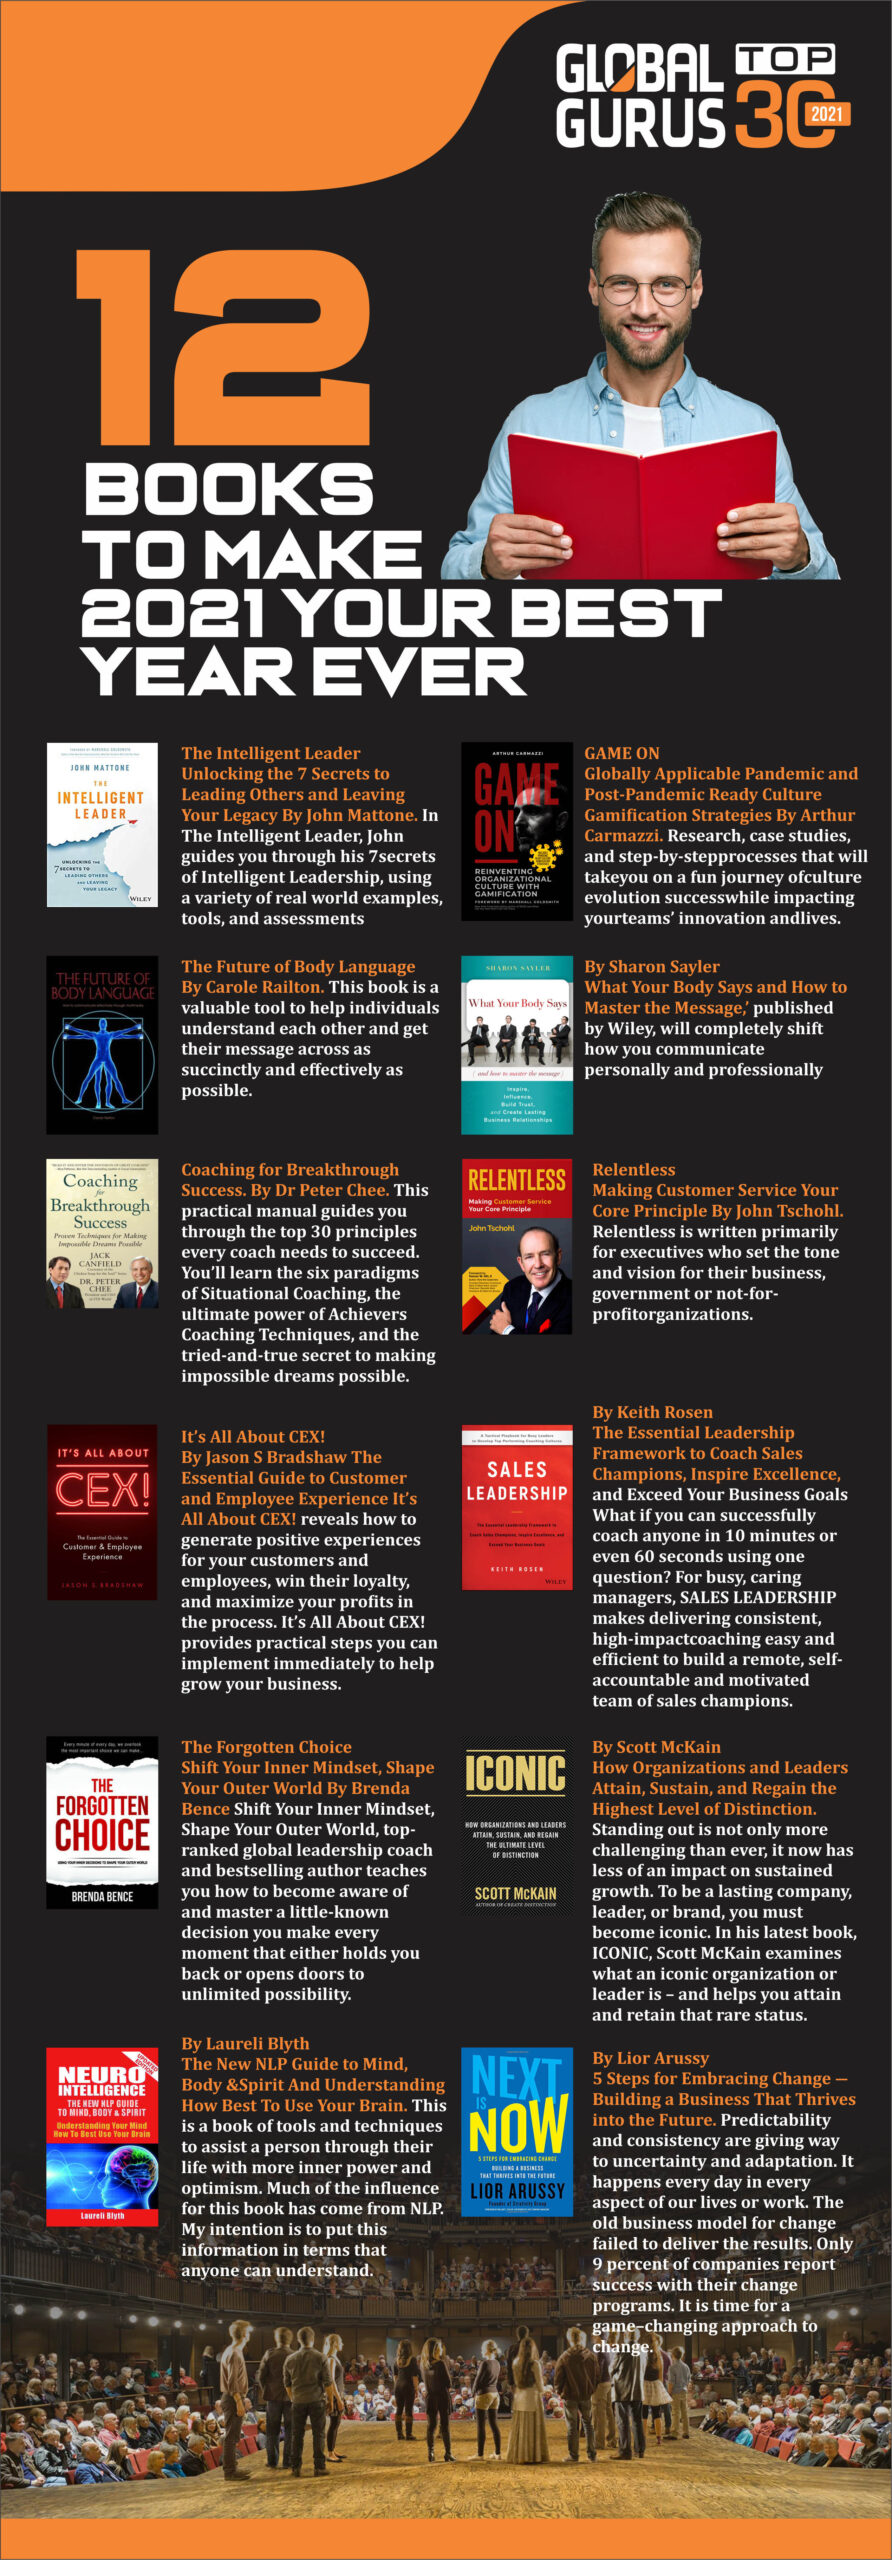 Infographic of Global Gurus 12 Books to make 2021 your Best Year Ever Image